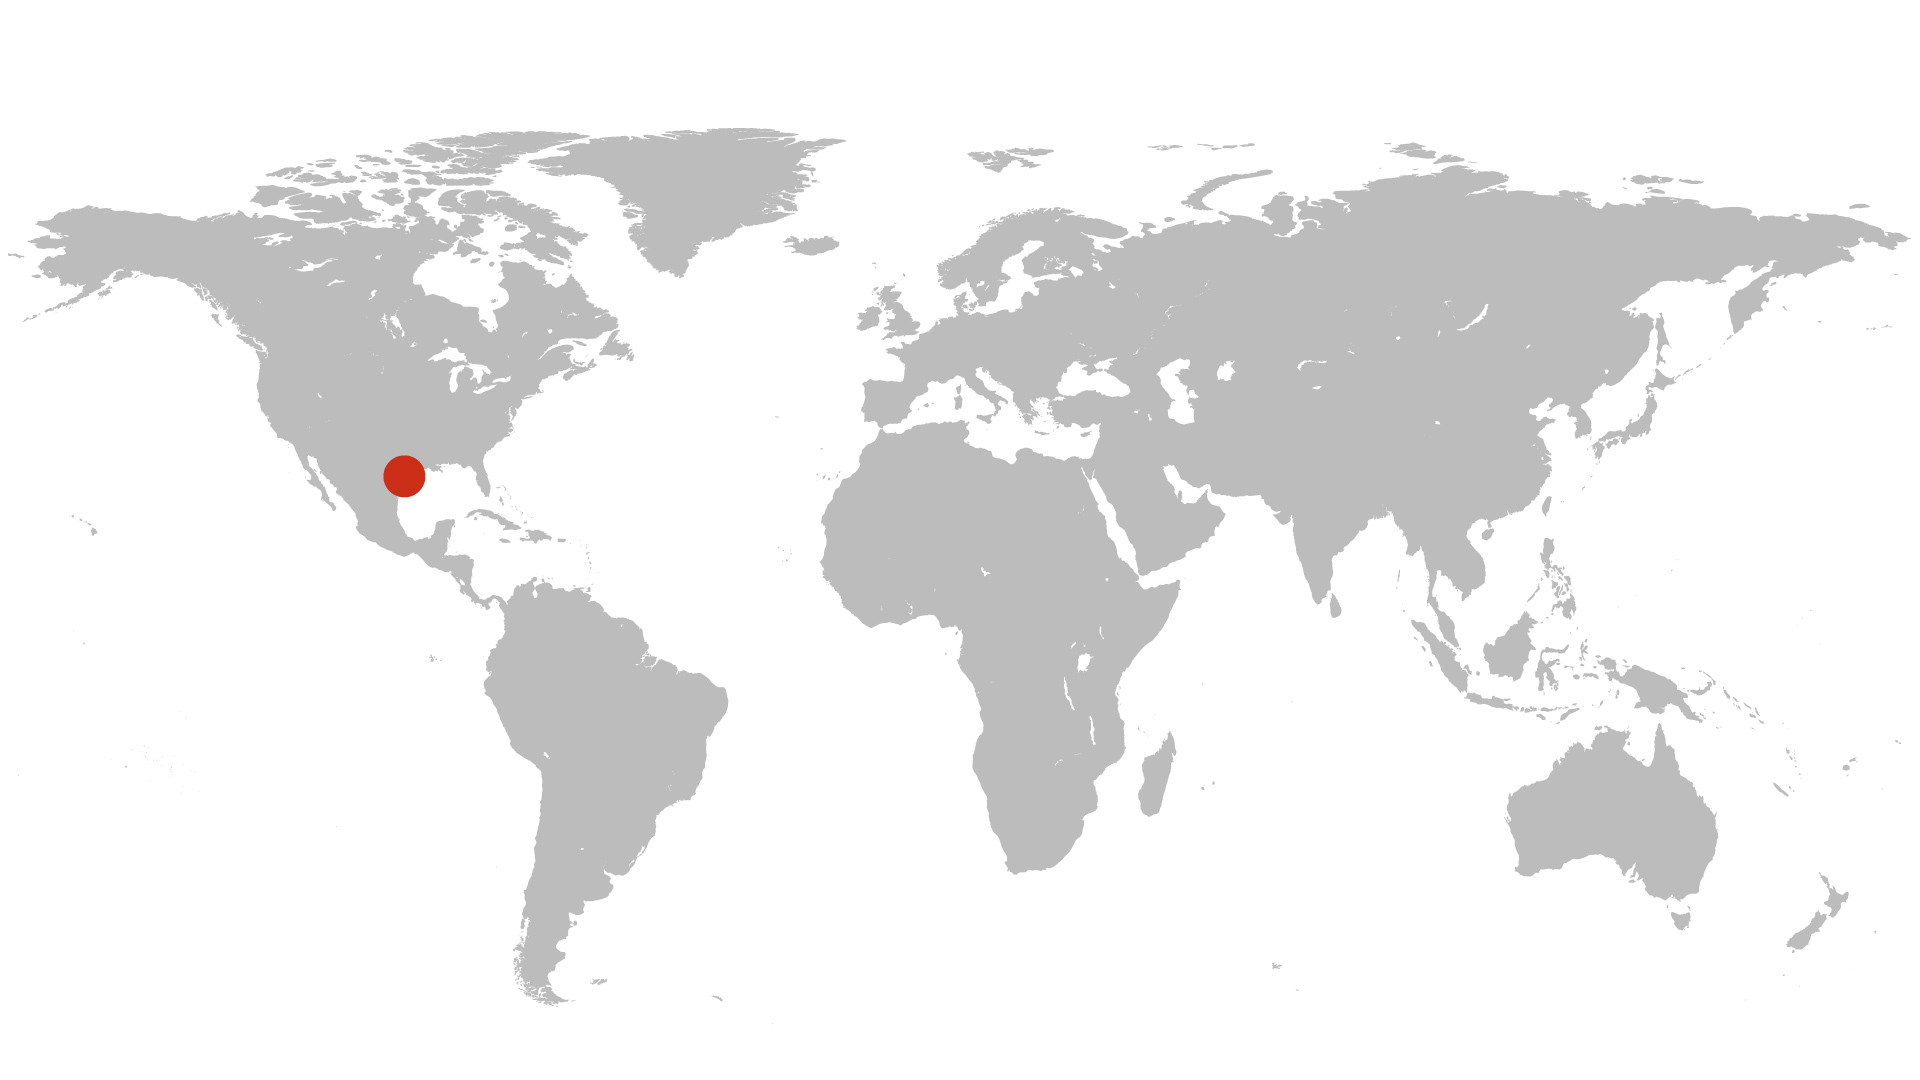 JB_WEB_World_Map_Exxon_Americas_Energy_D01.jpg